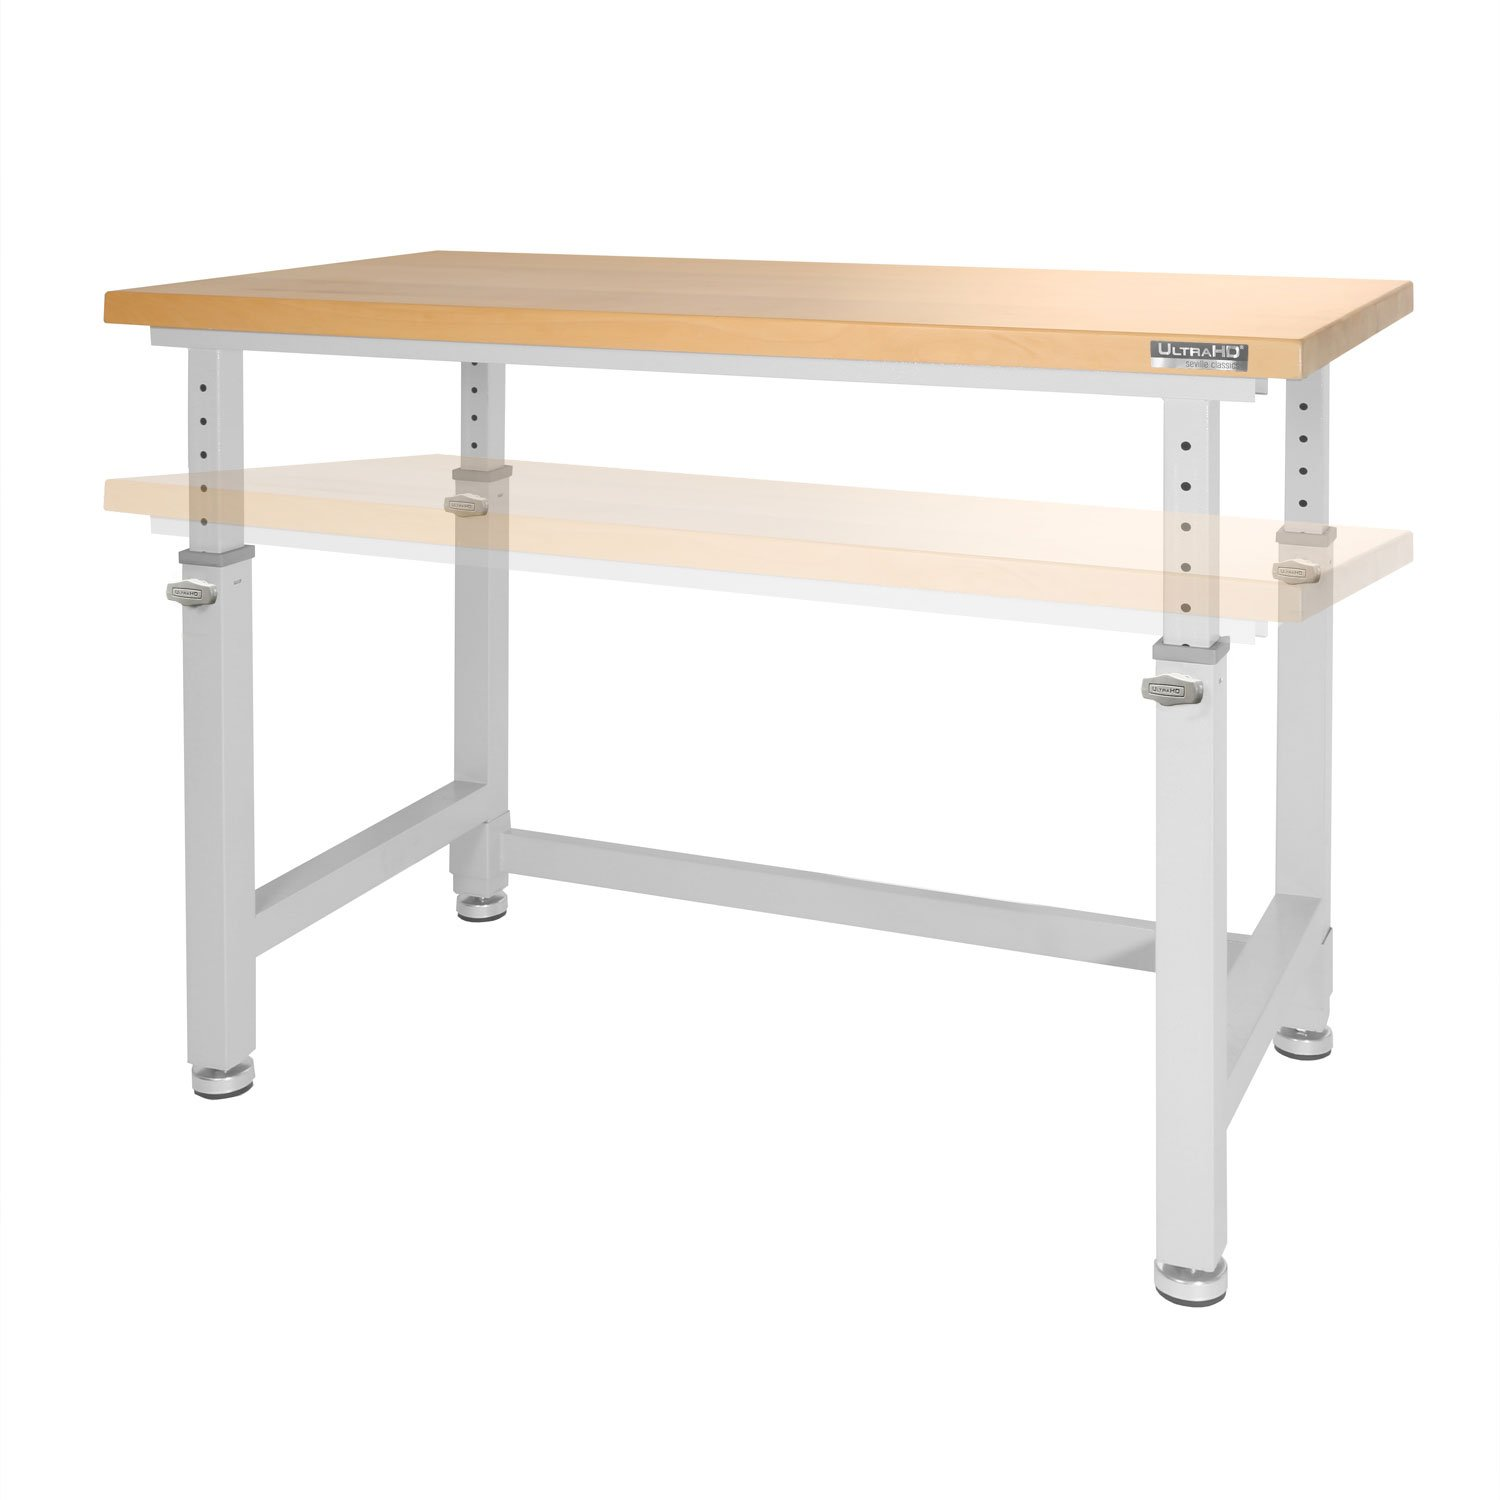 Sensational Details About Seville Classics 48 Ultrahd Adjustable Height Heavy Duty Wood Top Workbench Ibusinesslaw Wood Chair Design Ideas Ibusinesslaworg